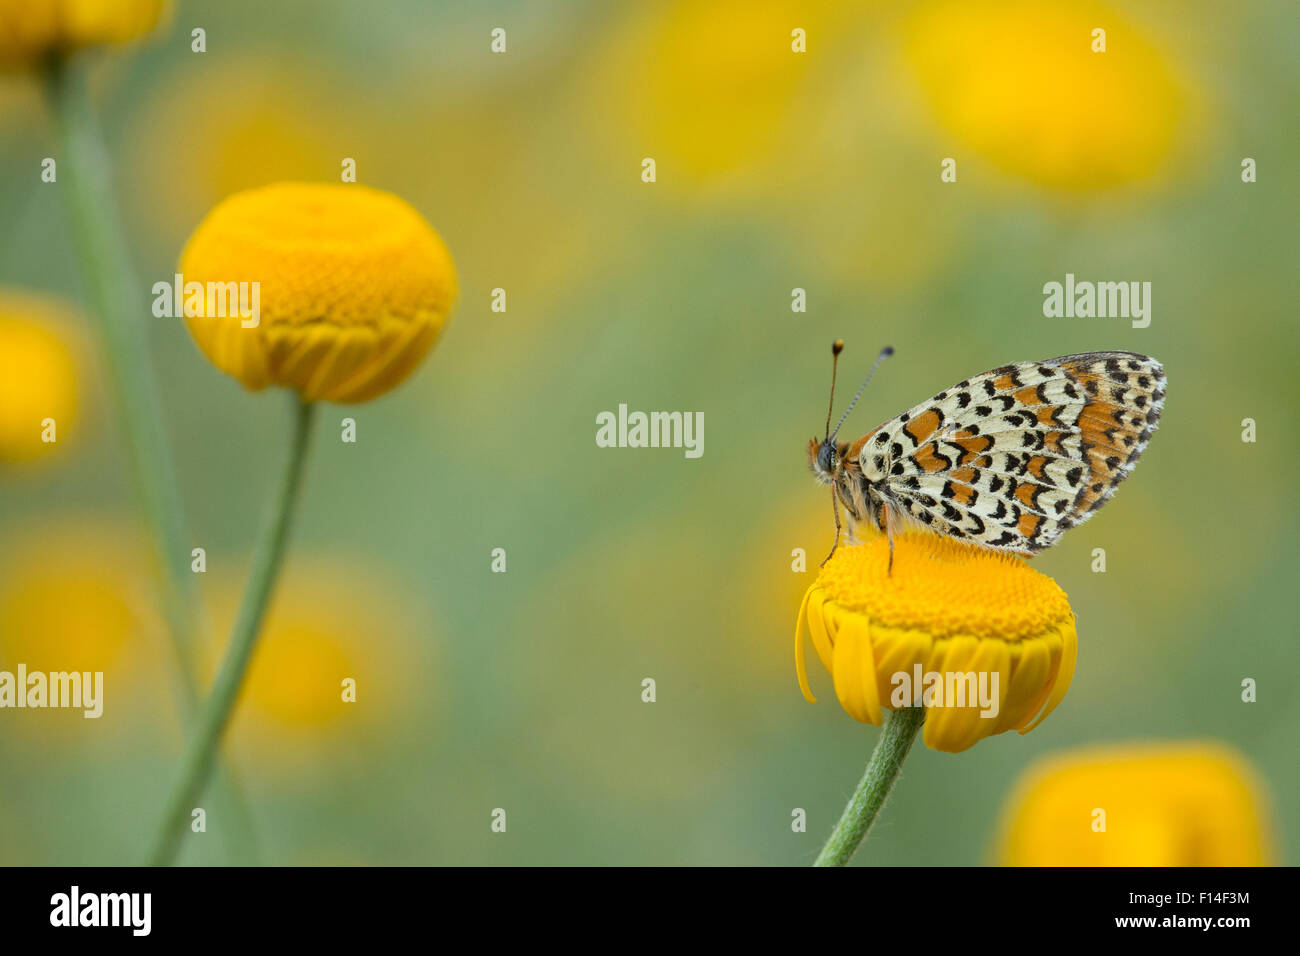 Lesser spotted fritillary (Melitaea trivia) adult at rest on yellow flower, Bulgaria. - Stock Image